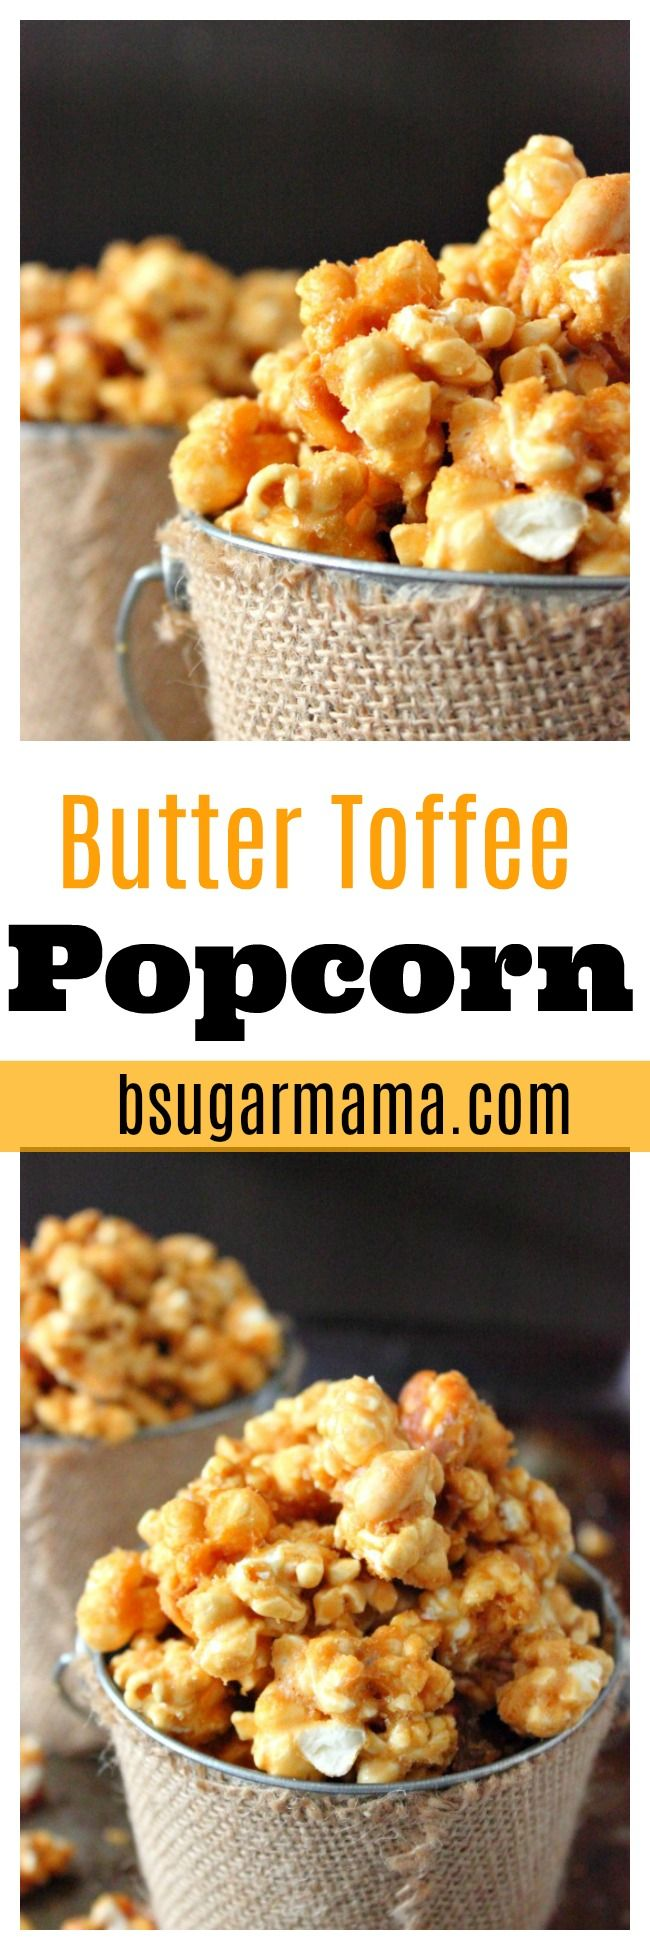 This Butter Toffee Popcorn recipe is perfect to give as a holiday gift. This Butter Toffee Popcorn recipe is easy, buttery, and covered with toffee flavor.